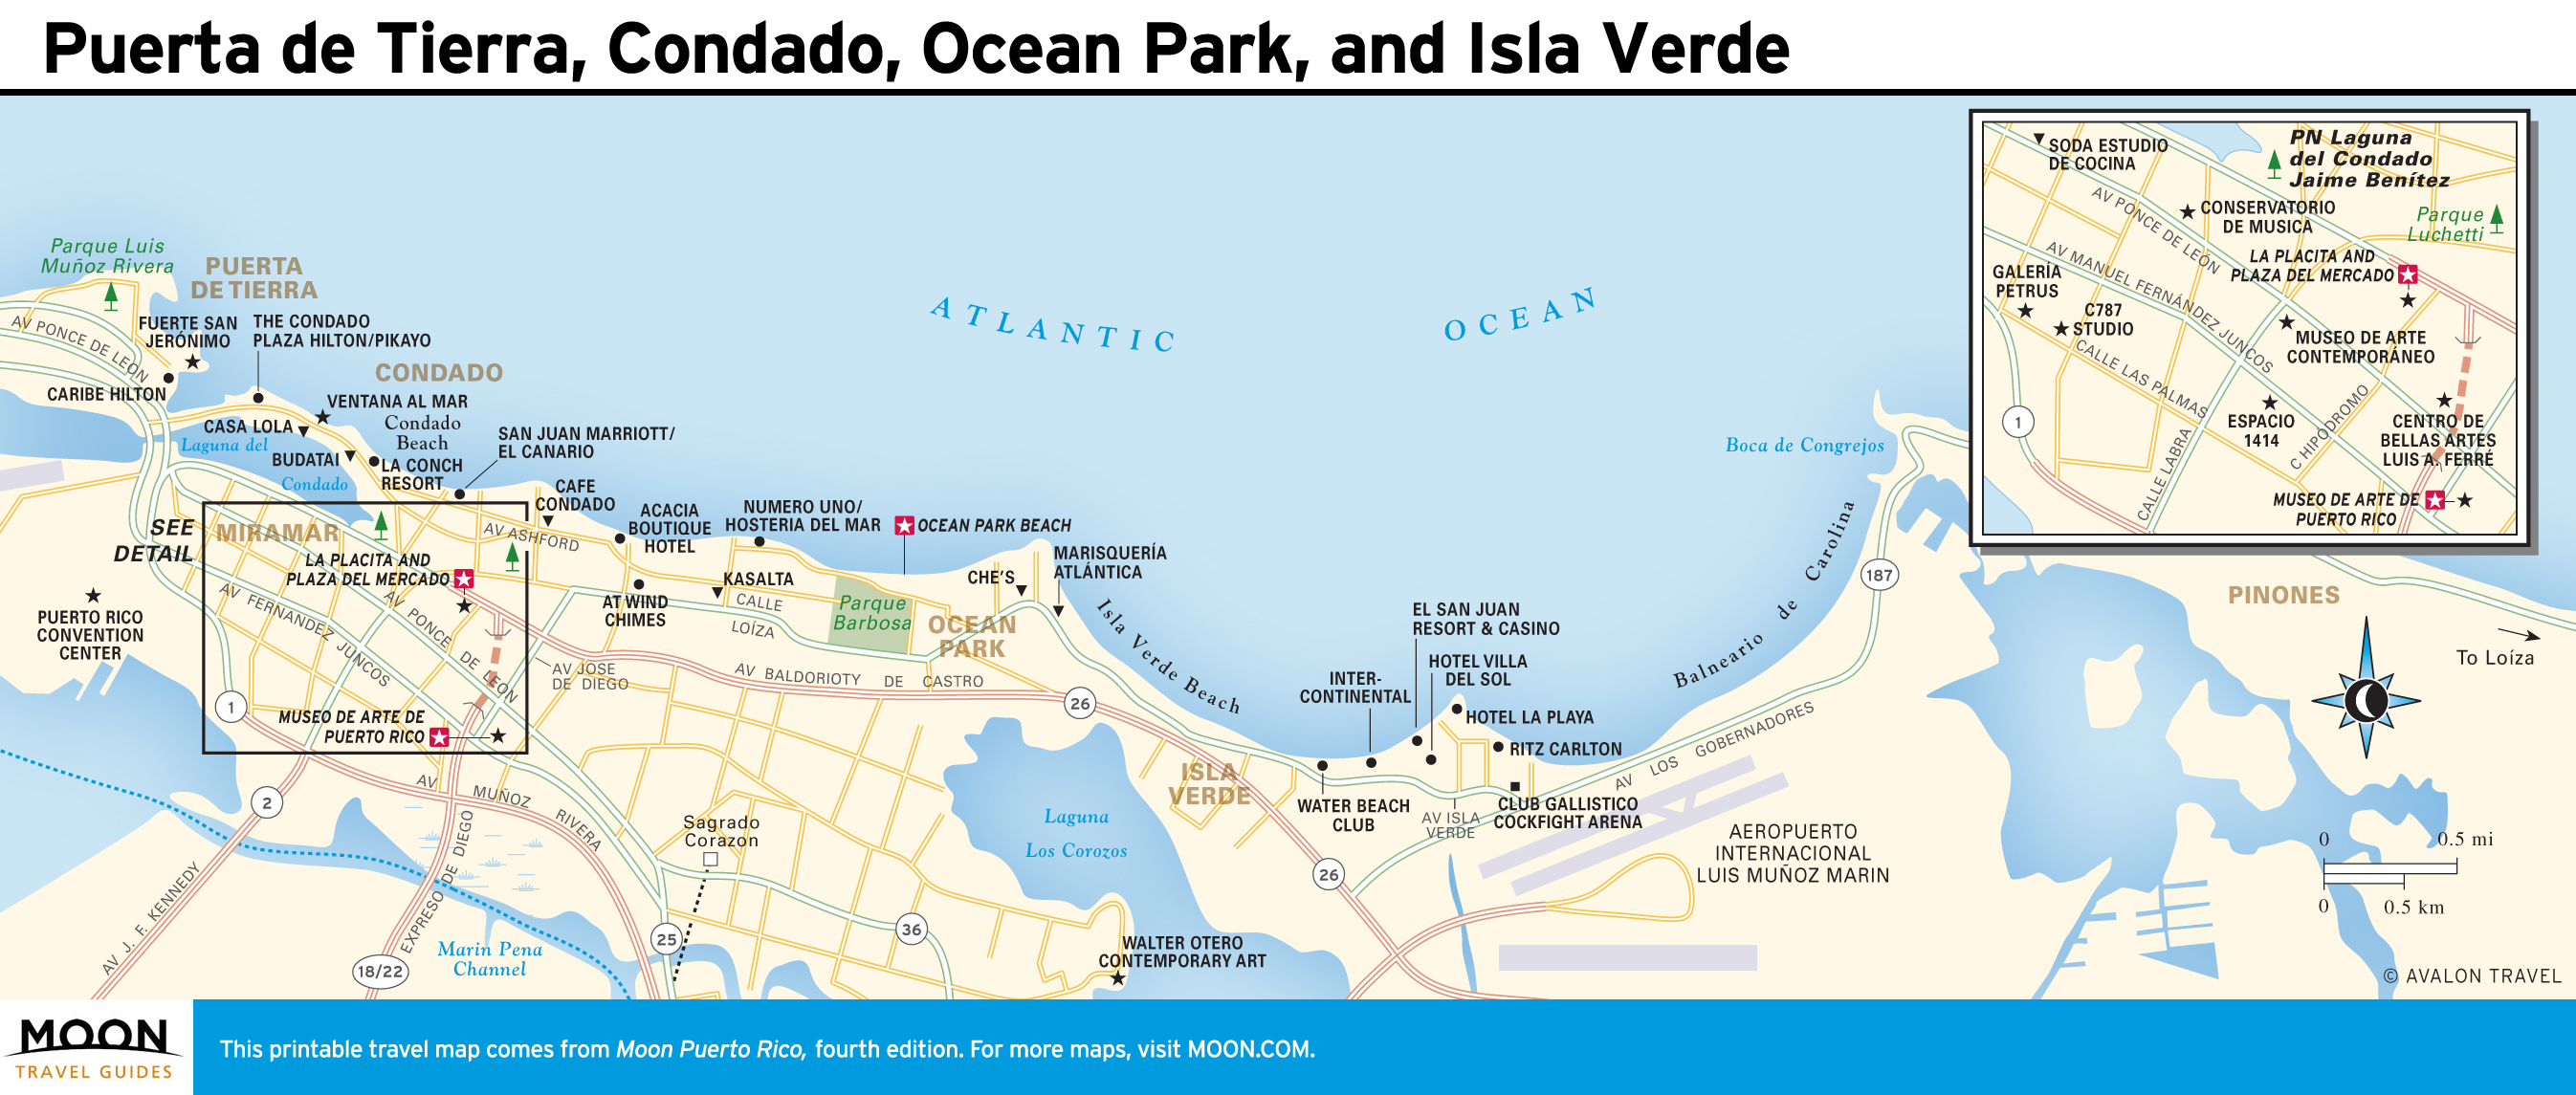 Puerto Rico | Moon Travel Guides